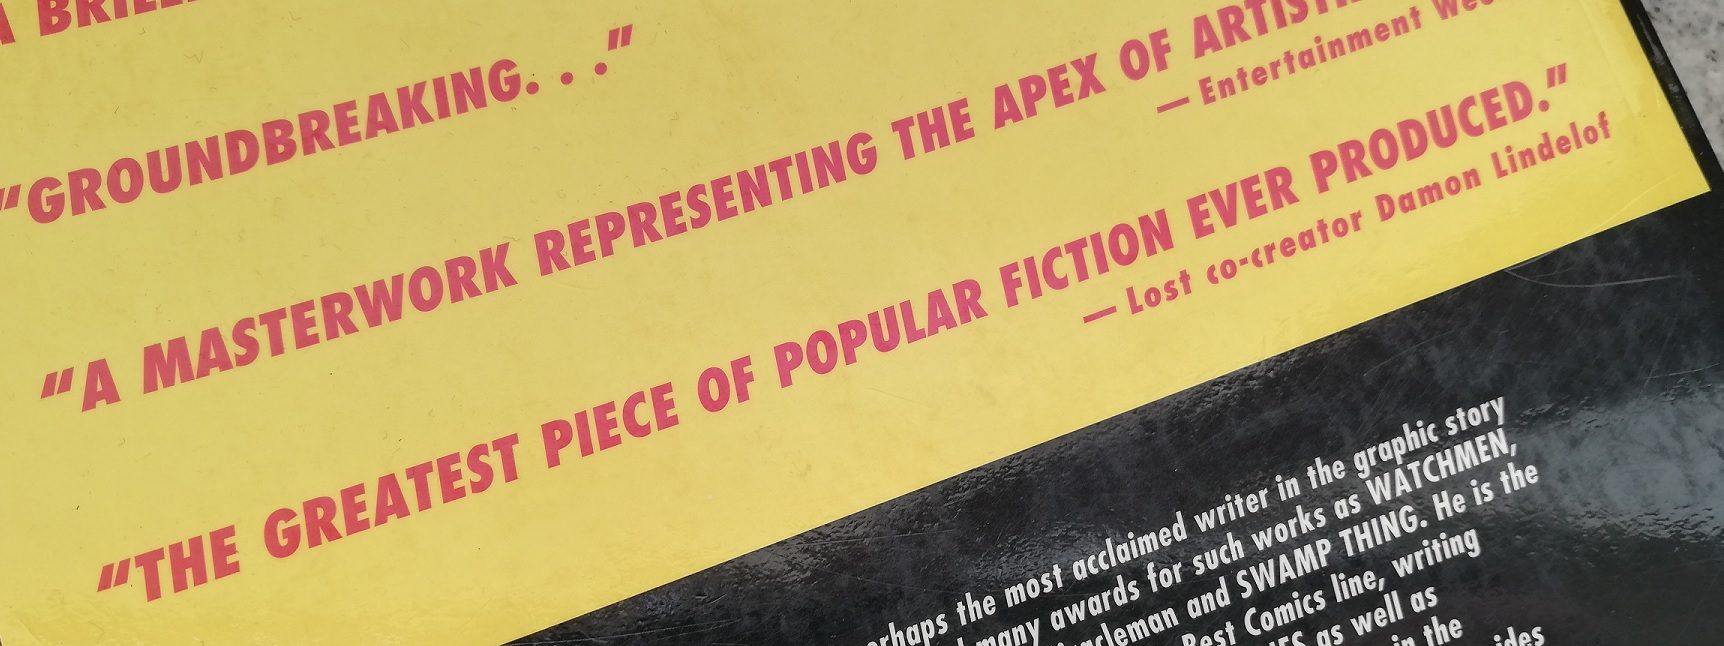 watchmen damon lindelof blurb